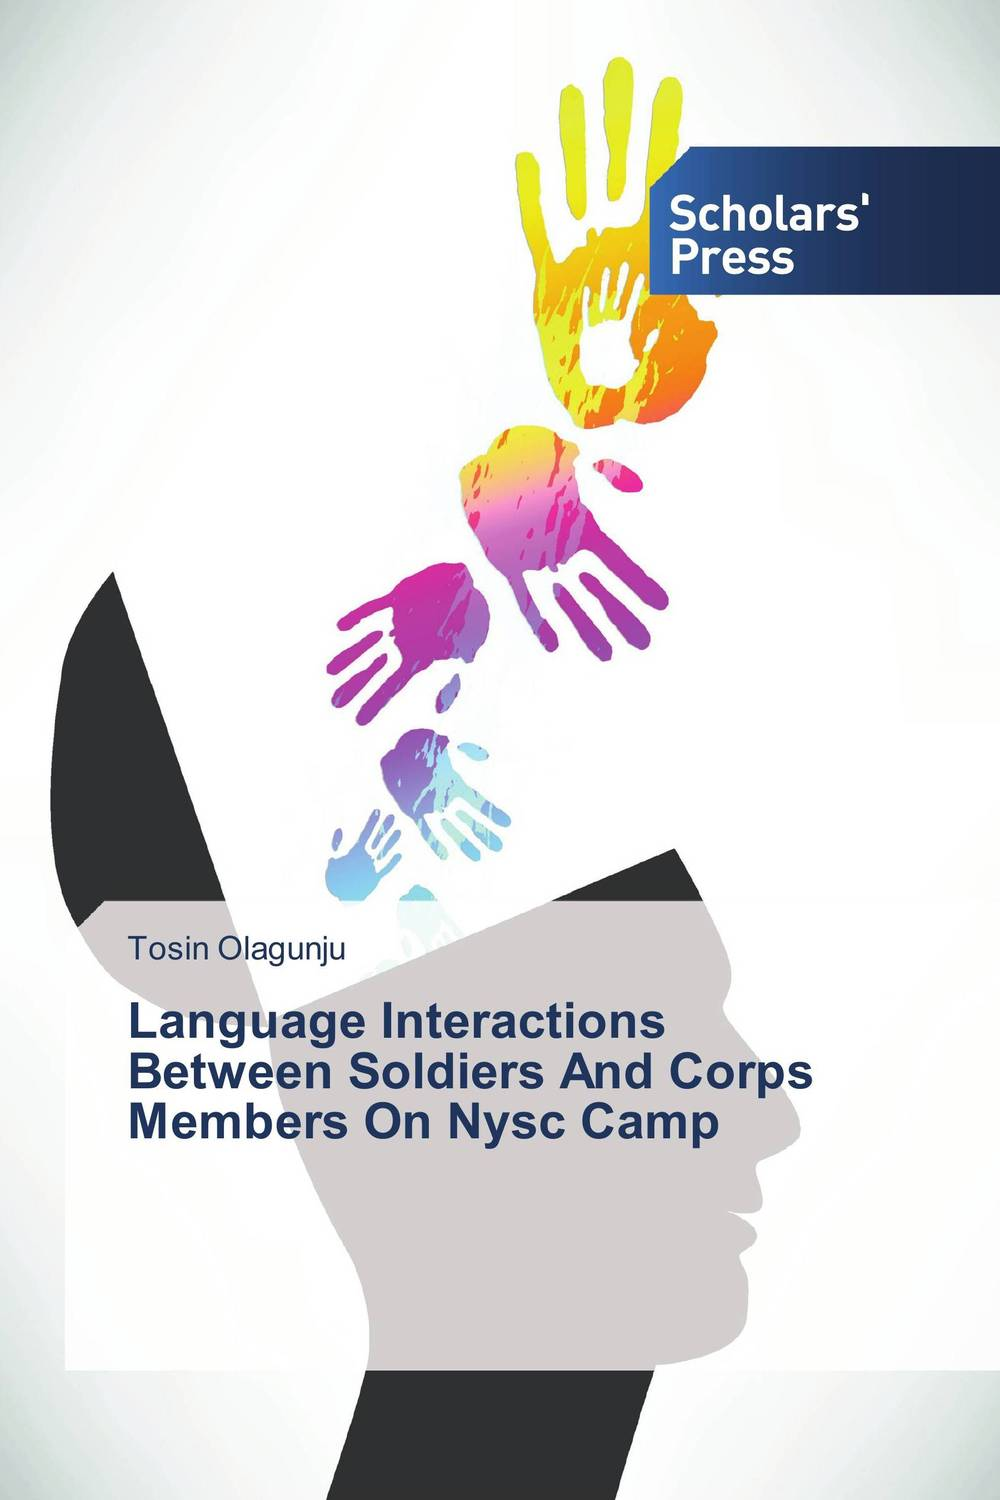 Language Interactions Between Soldiers And Corps Members On Nysc Camp analysis of cracked members